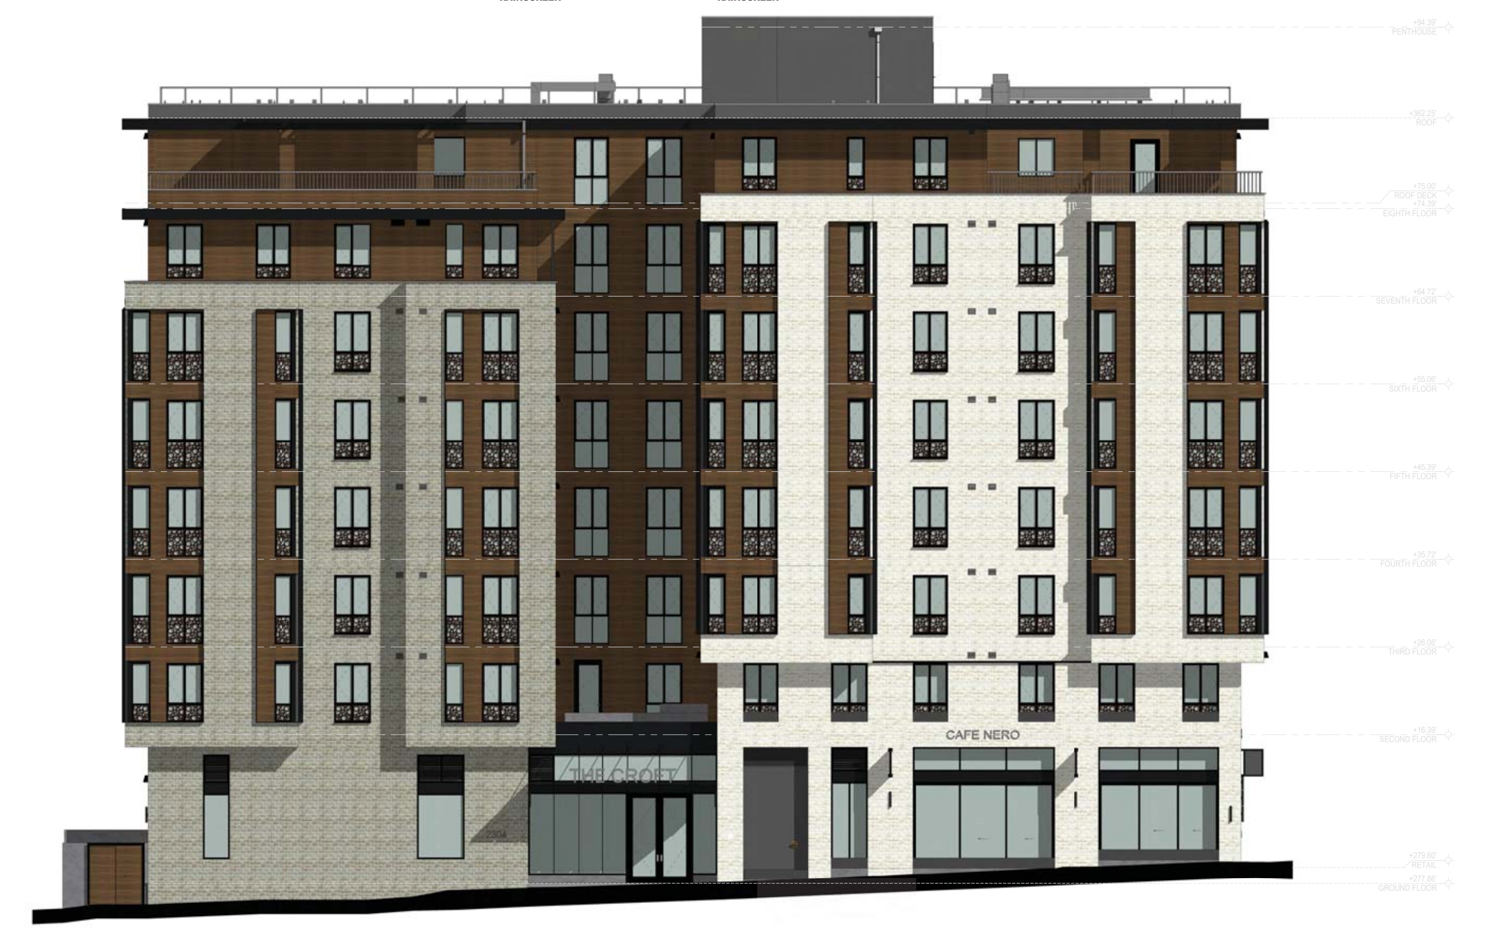 East elevation of 2590 Bancroft Way along Bowditch Street, rendering by Trachtenberg Architects